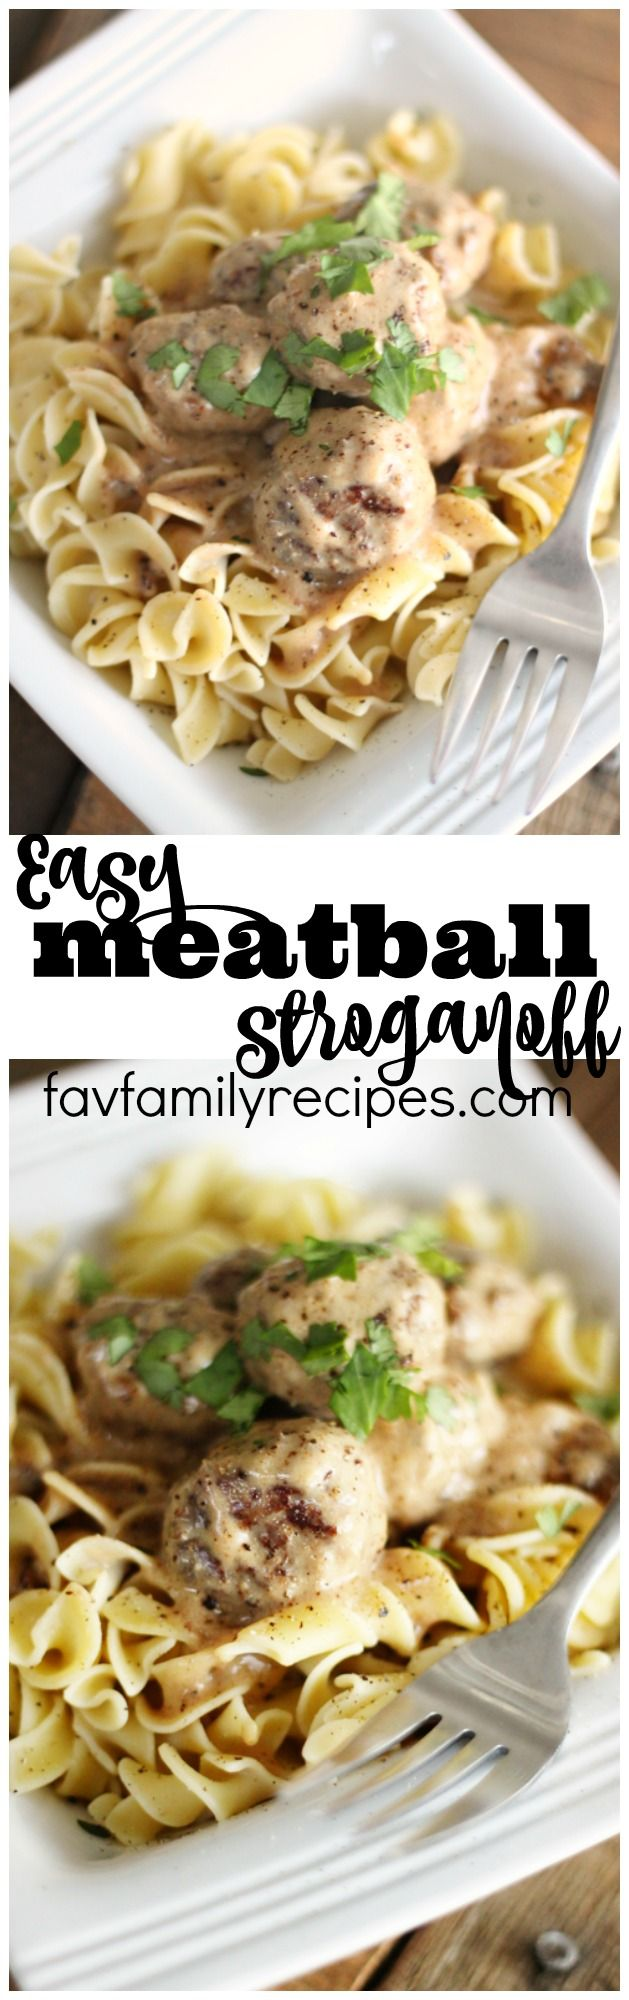 Meatball stroganoff is one of our favorite weeknight dinners. It's an easy family meal that even the kids will love!